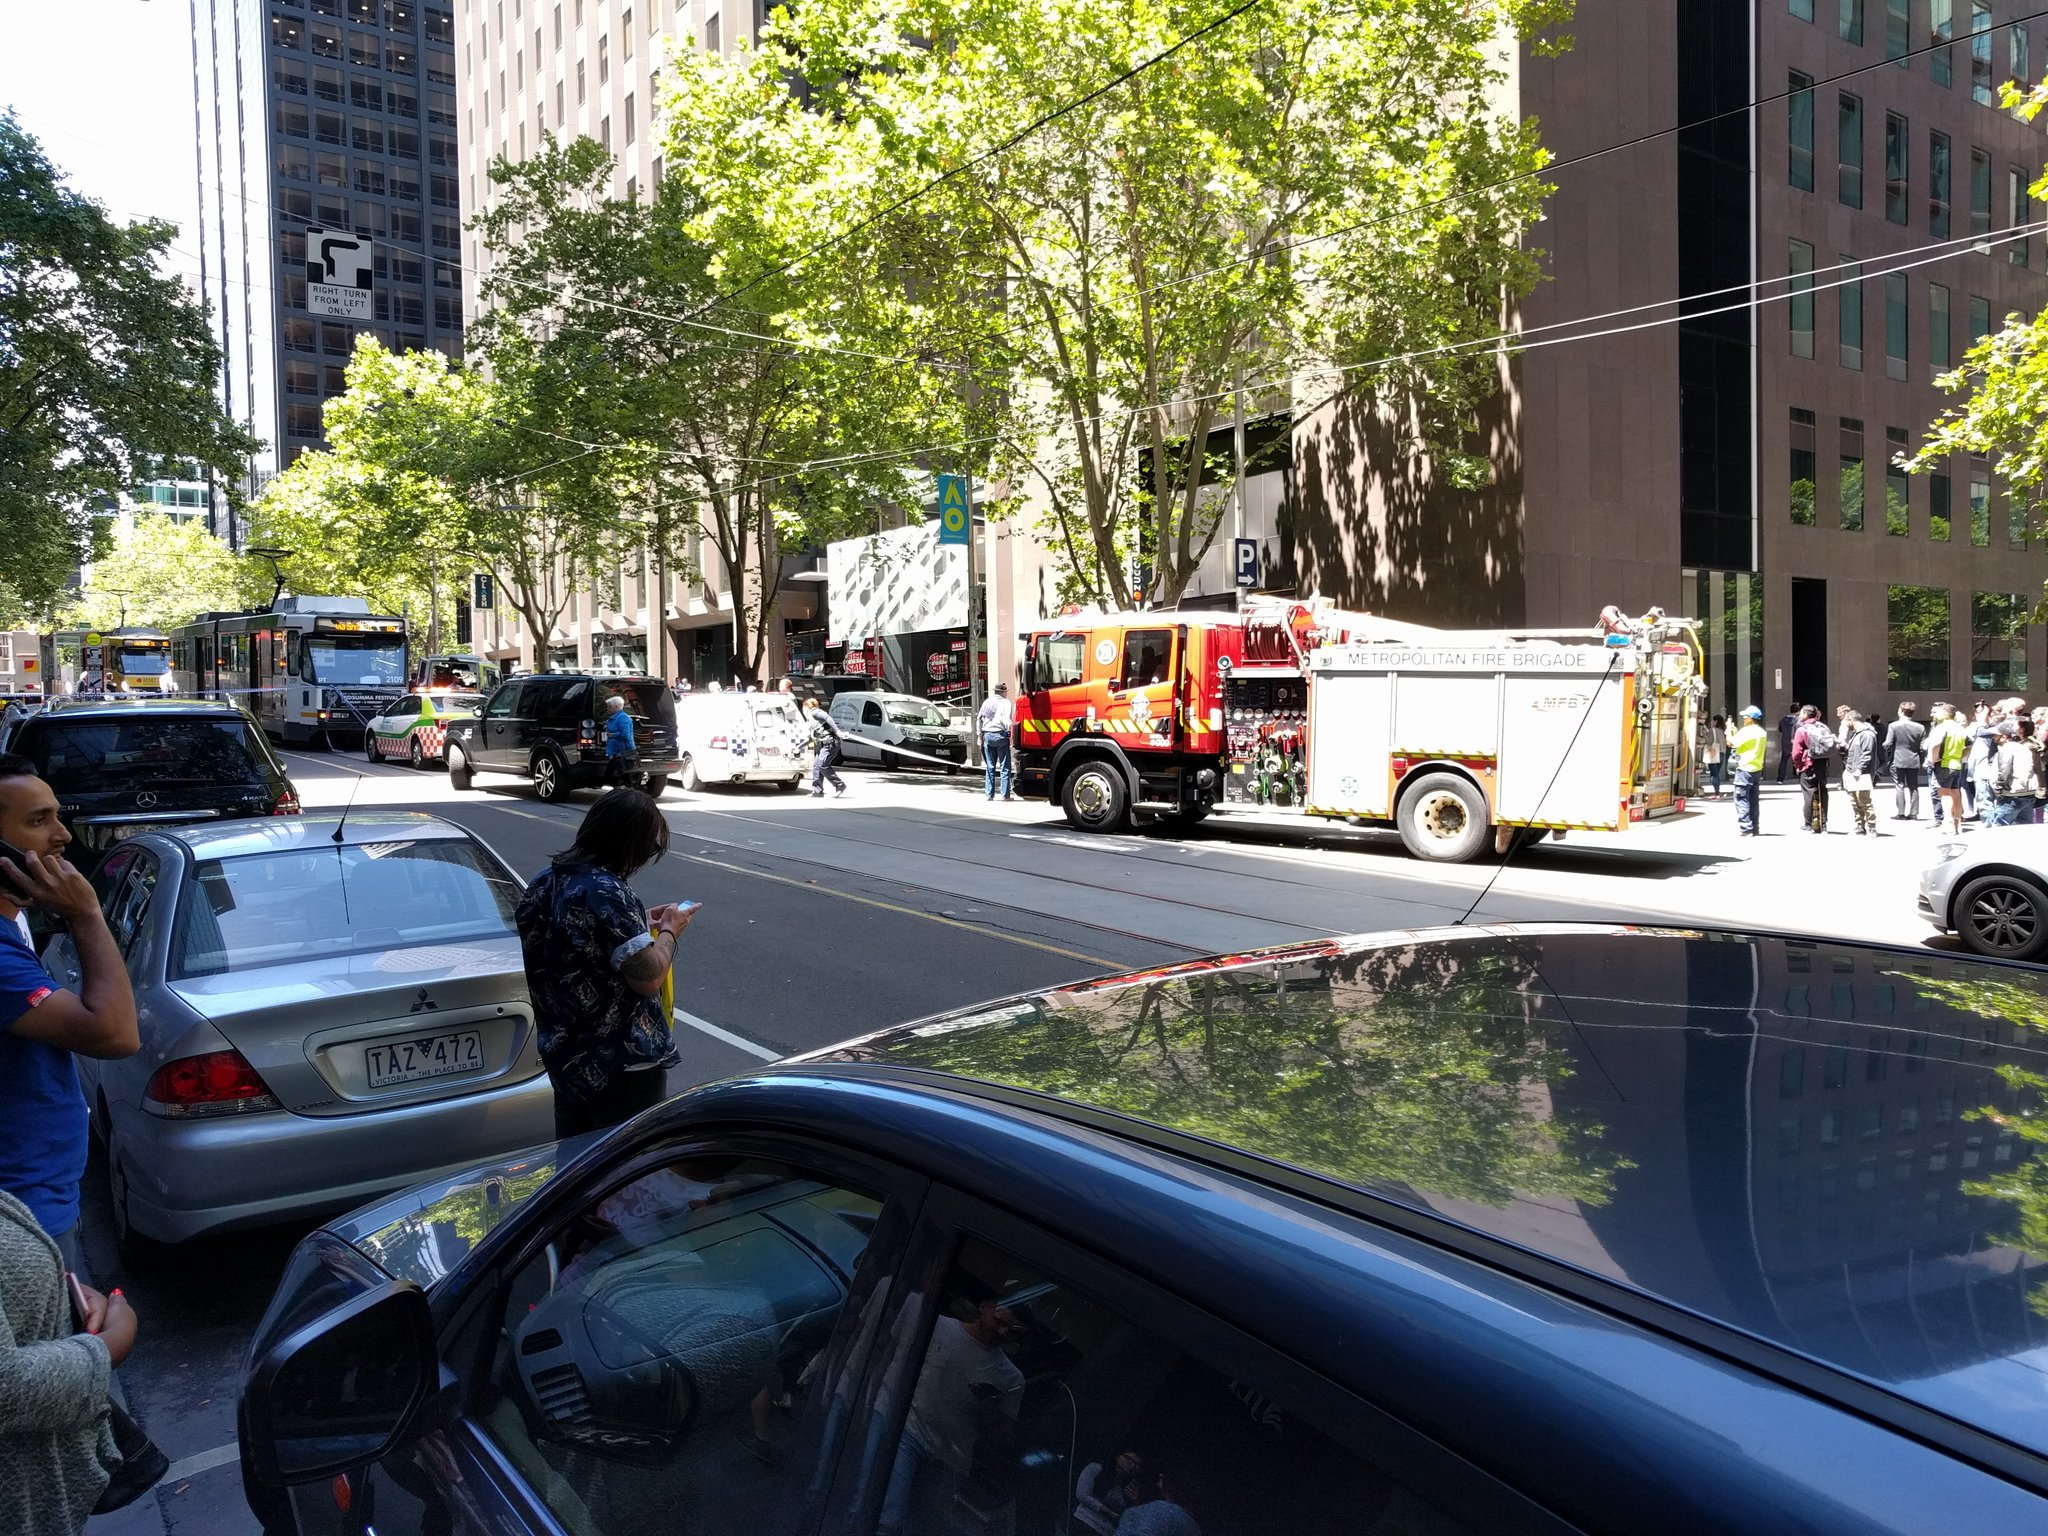 Thumbnail for People injured after car hits pedestrians in Melbourne